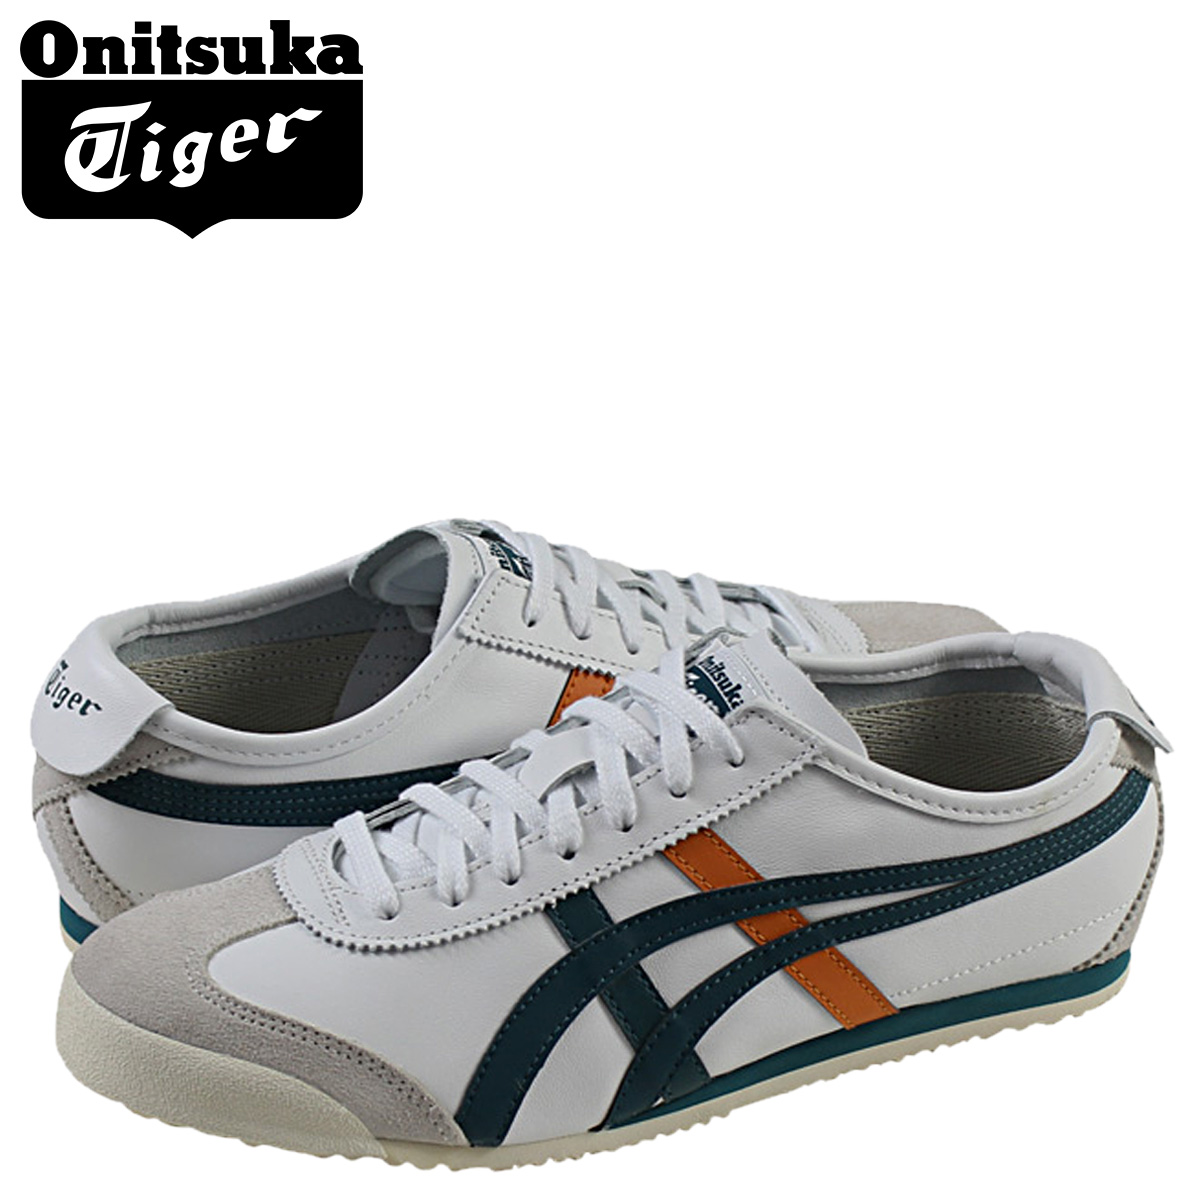 buy popular 466e6 fdaa3 Onitsuka tiger ASICS Onitsuka Tiger asics Mexico 66 sneakers MEXICO 66  TH4J2L-0180 men gap Dis shoes white white